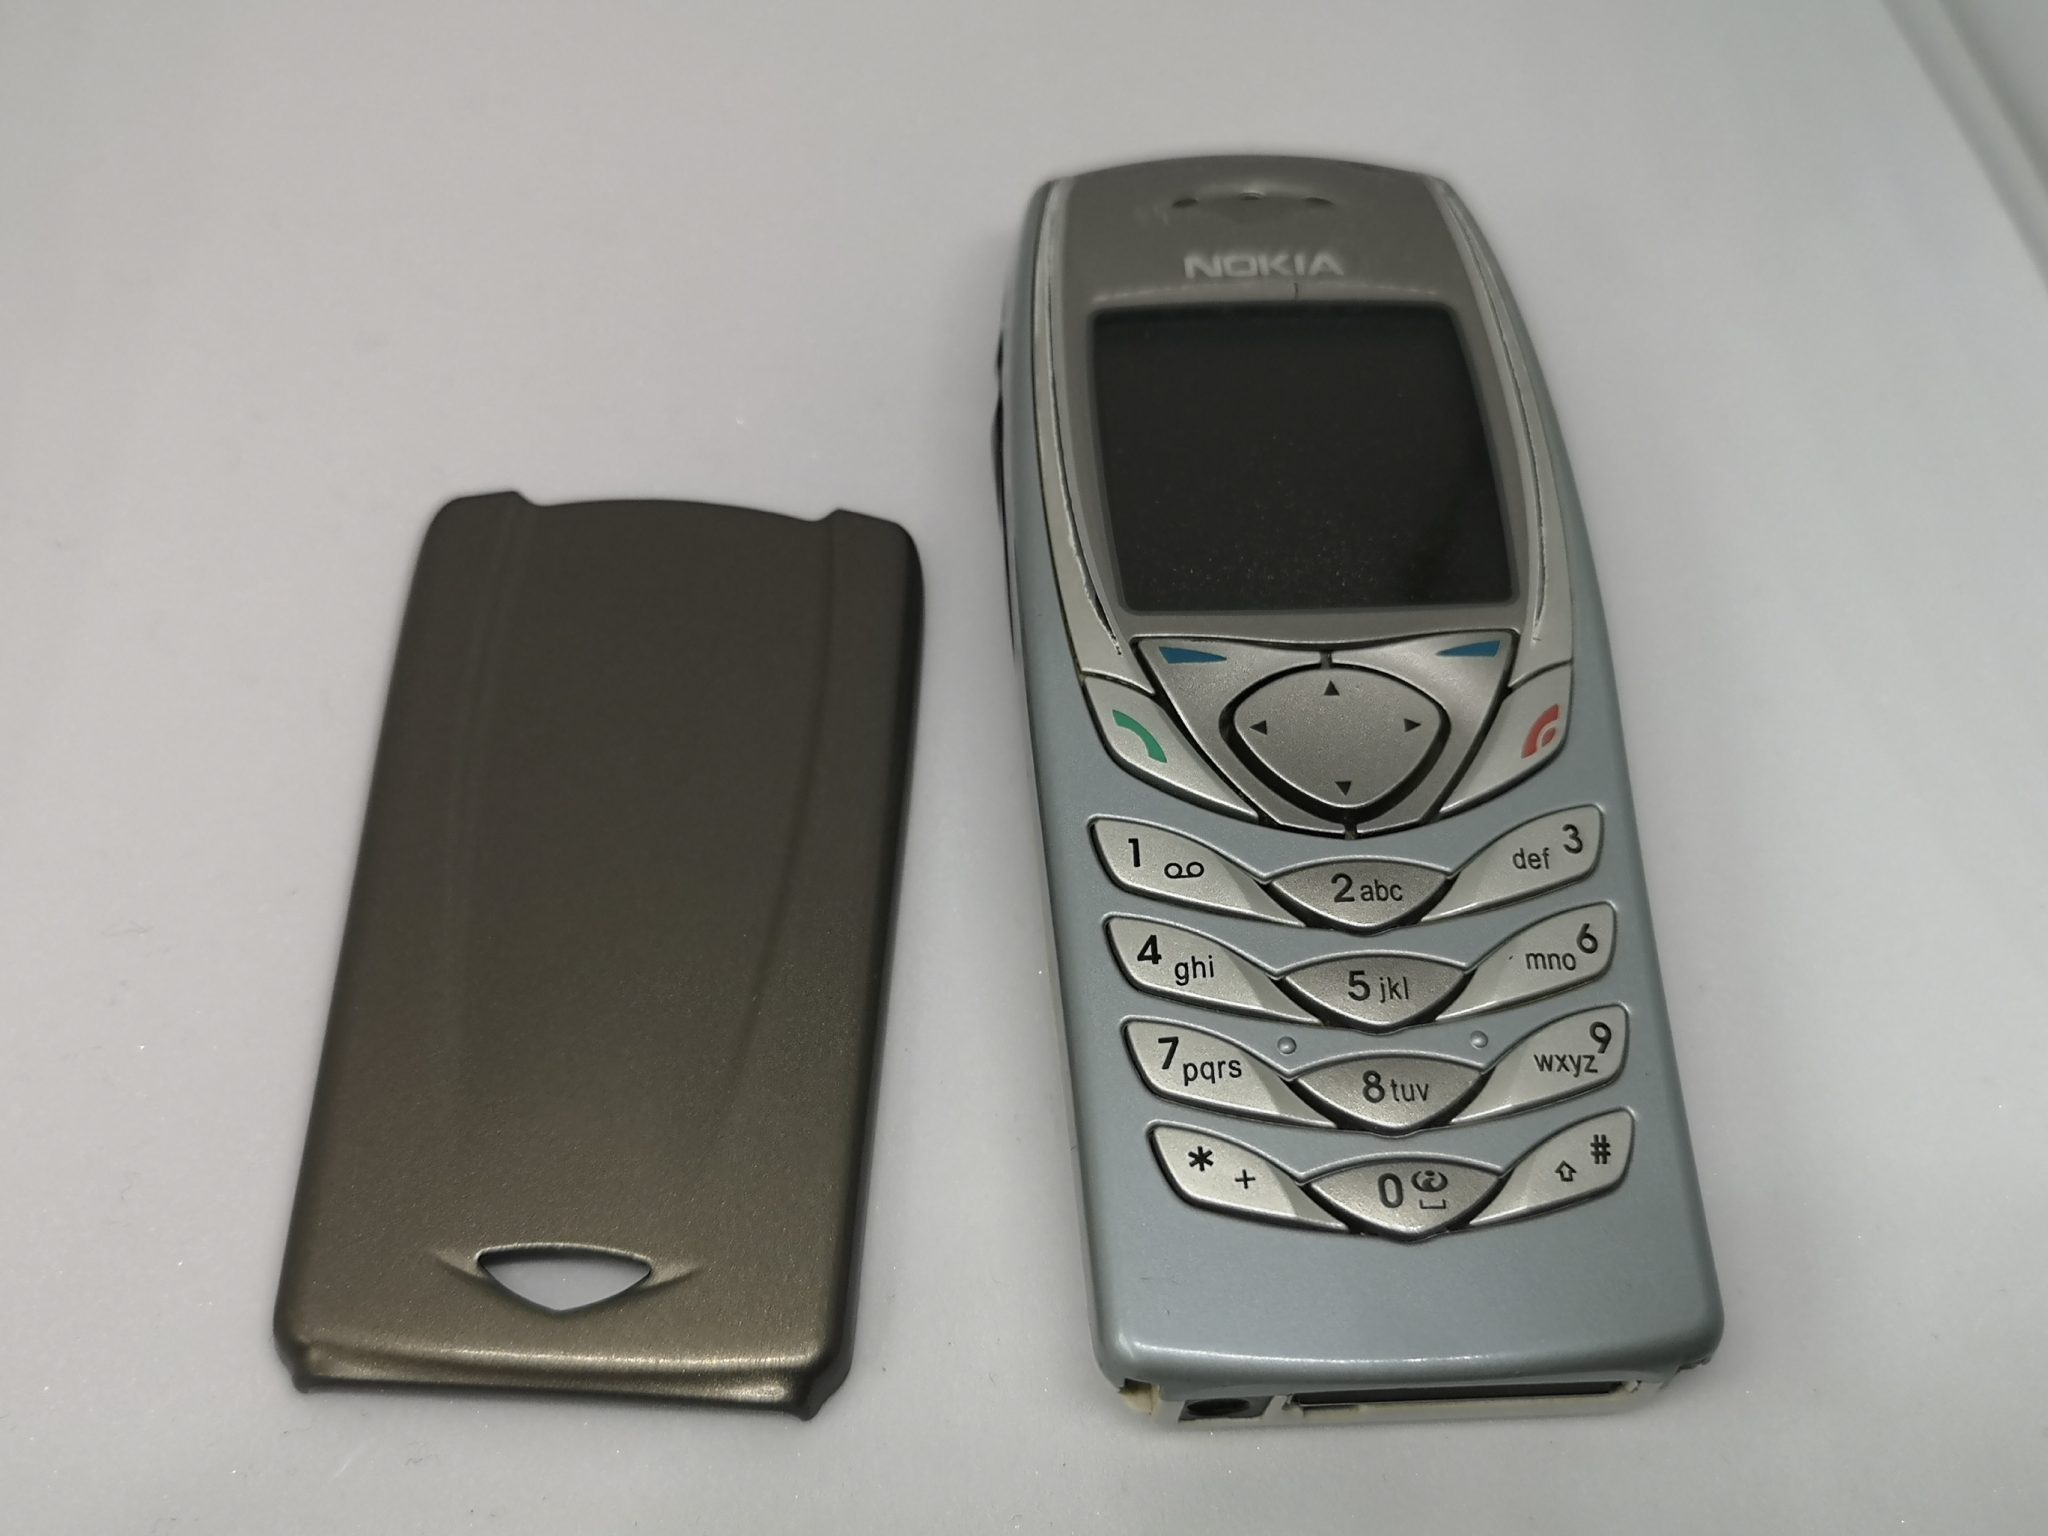 Nokia 6100 Vintage Mobile Phone Review - A Continued Evolution